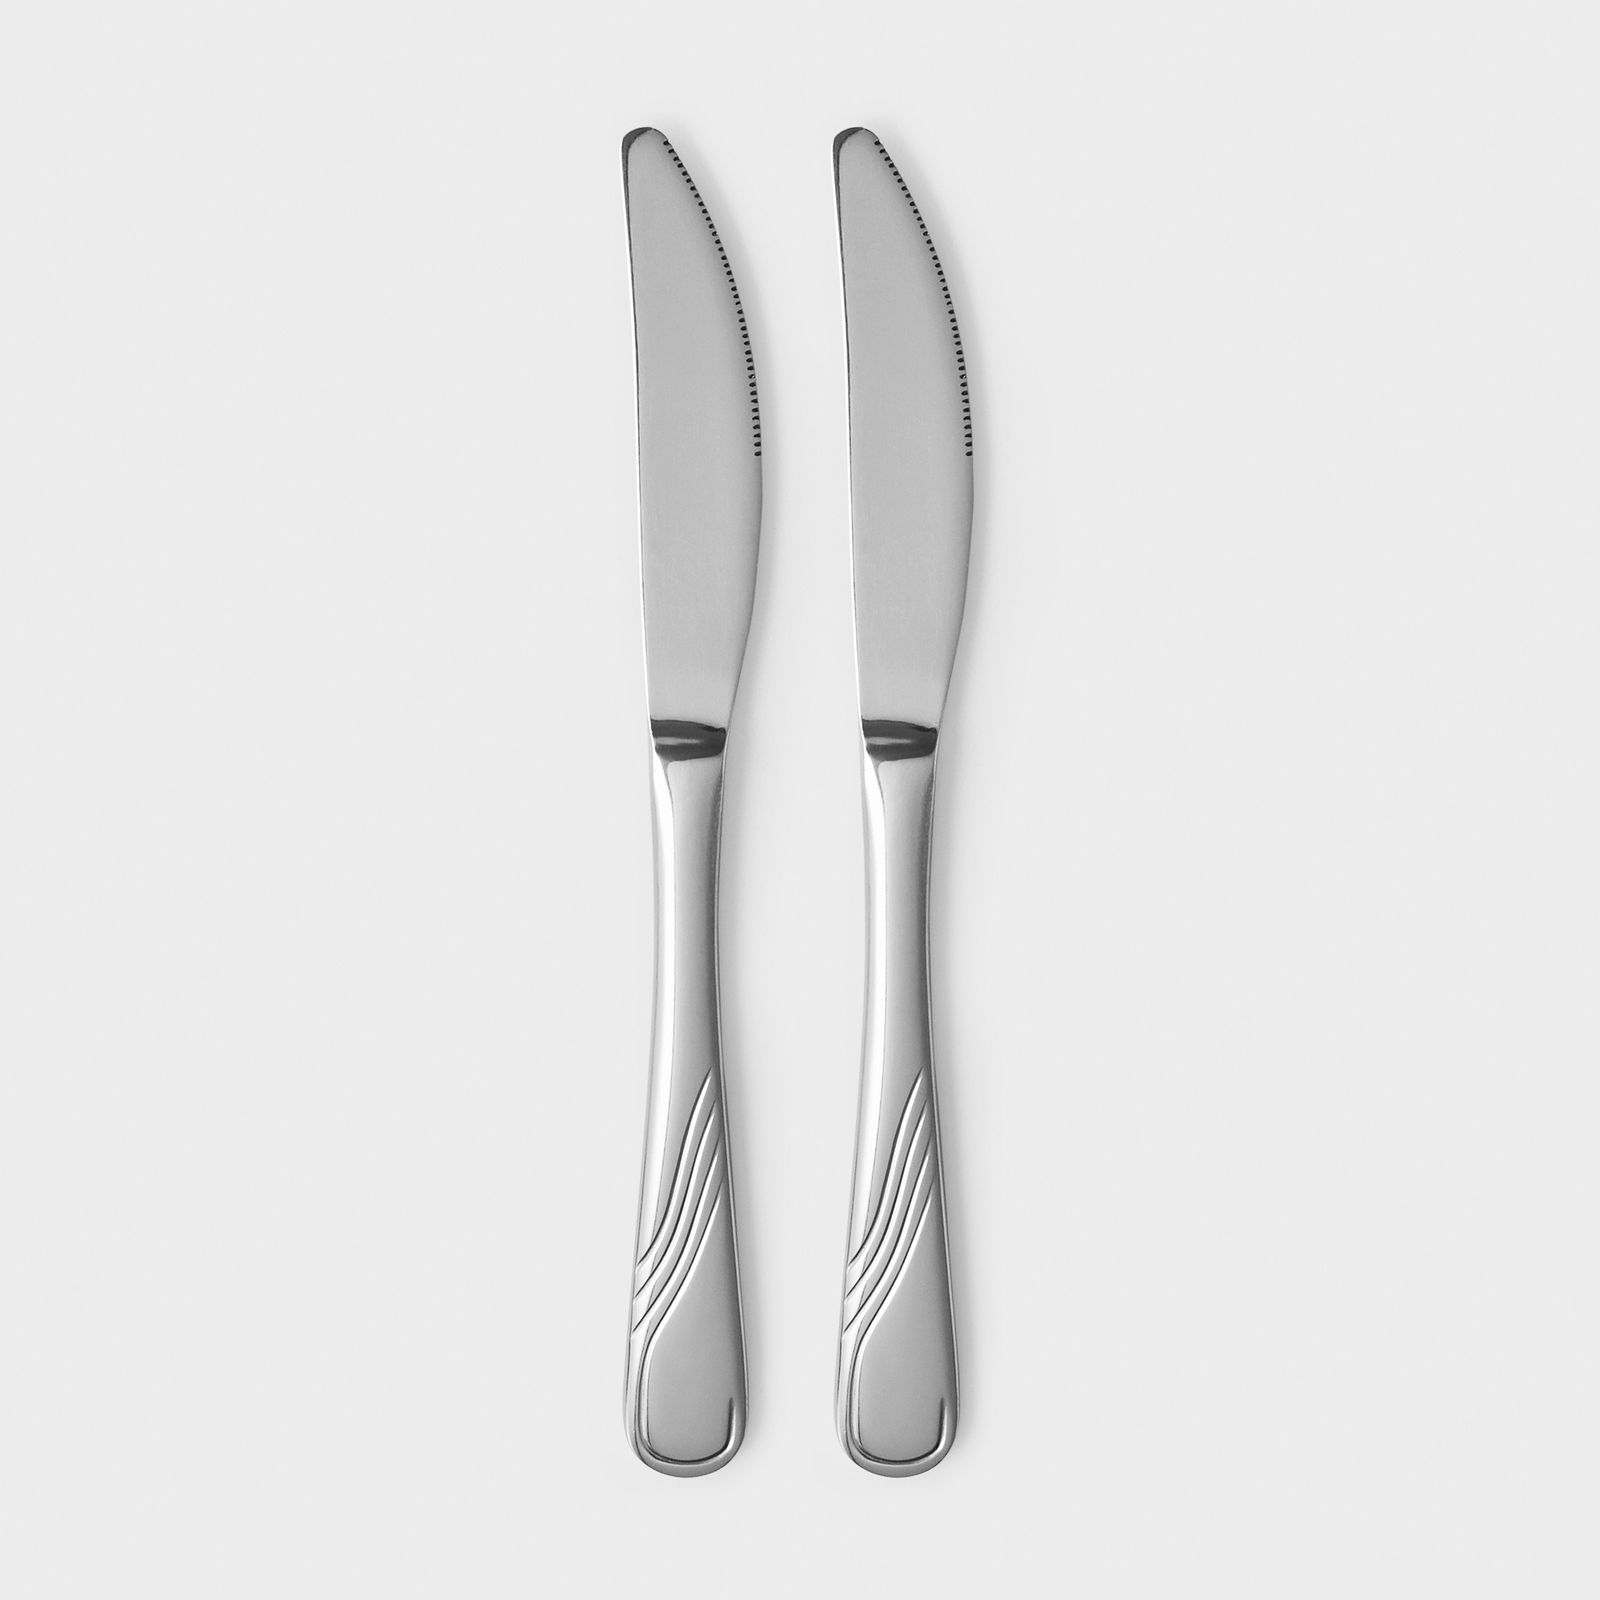 Napoli table knife 2-pieces